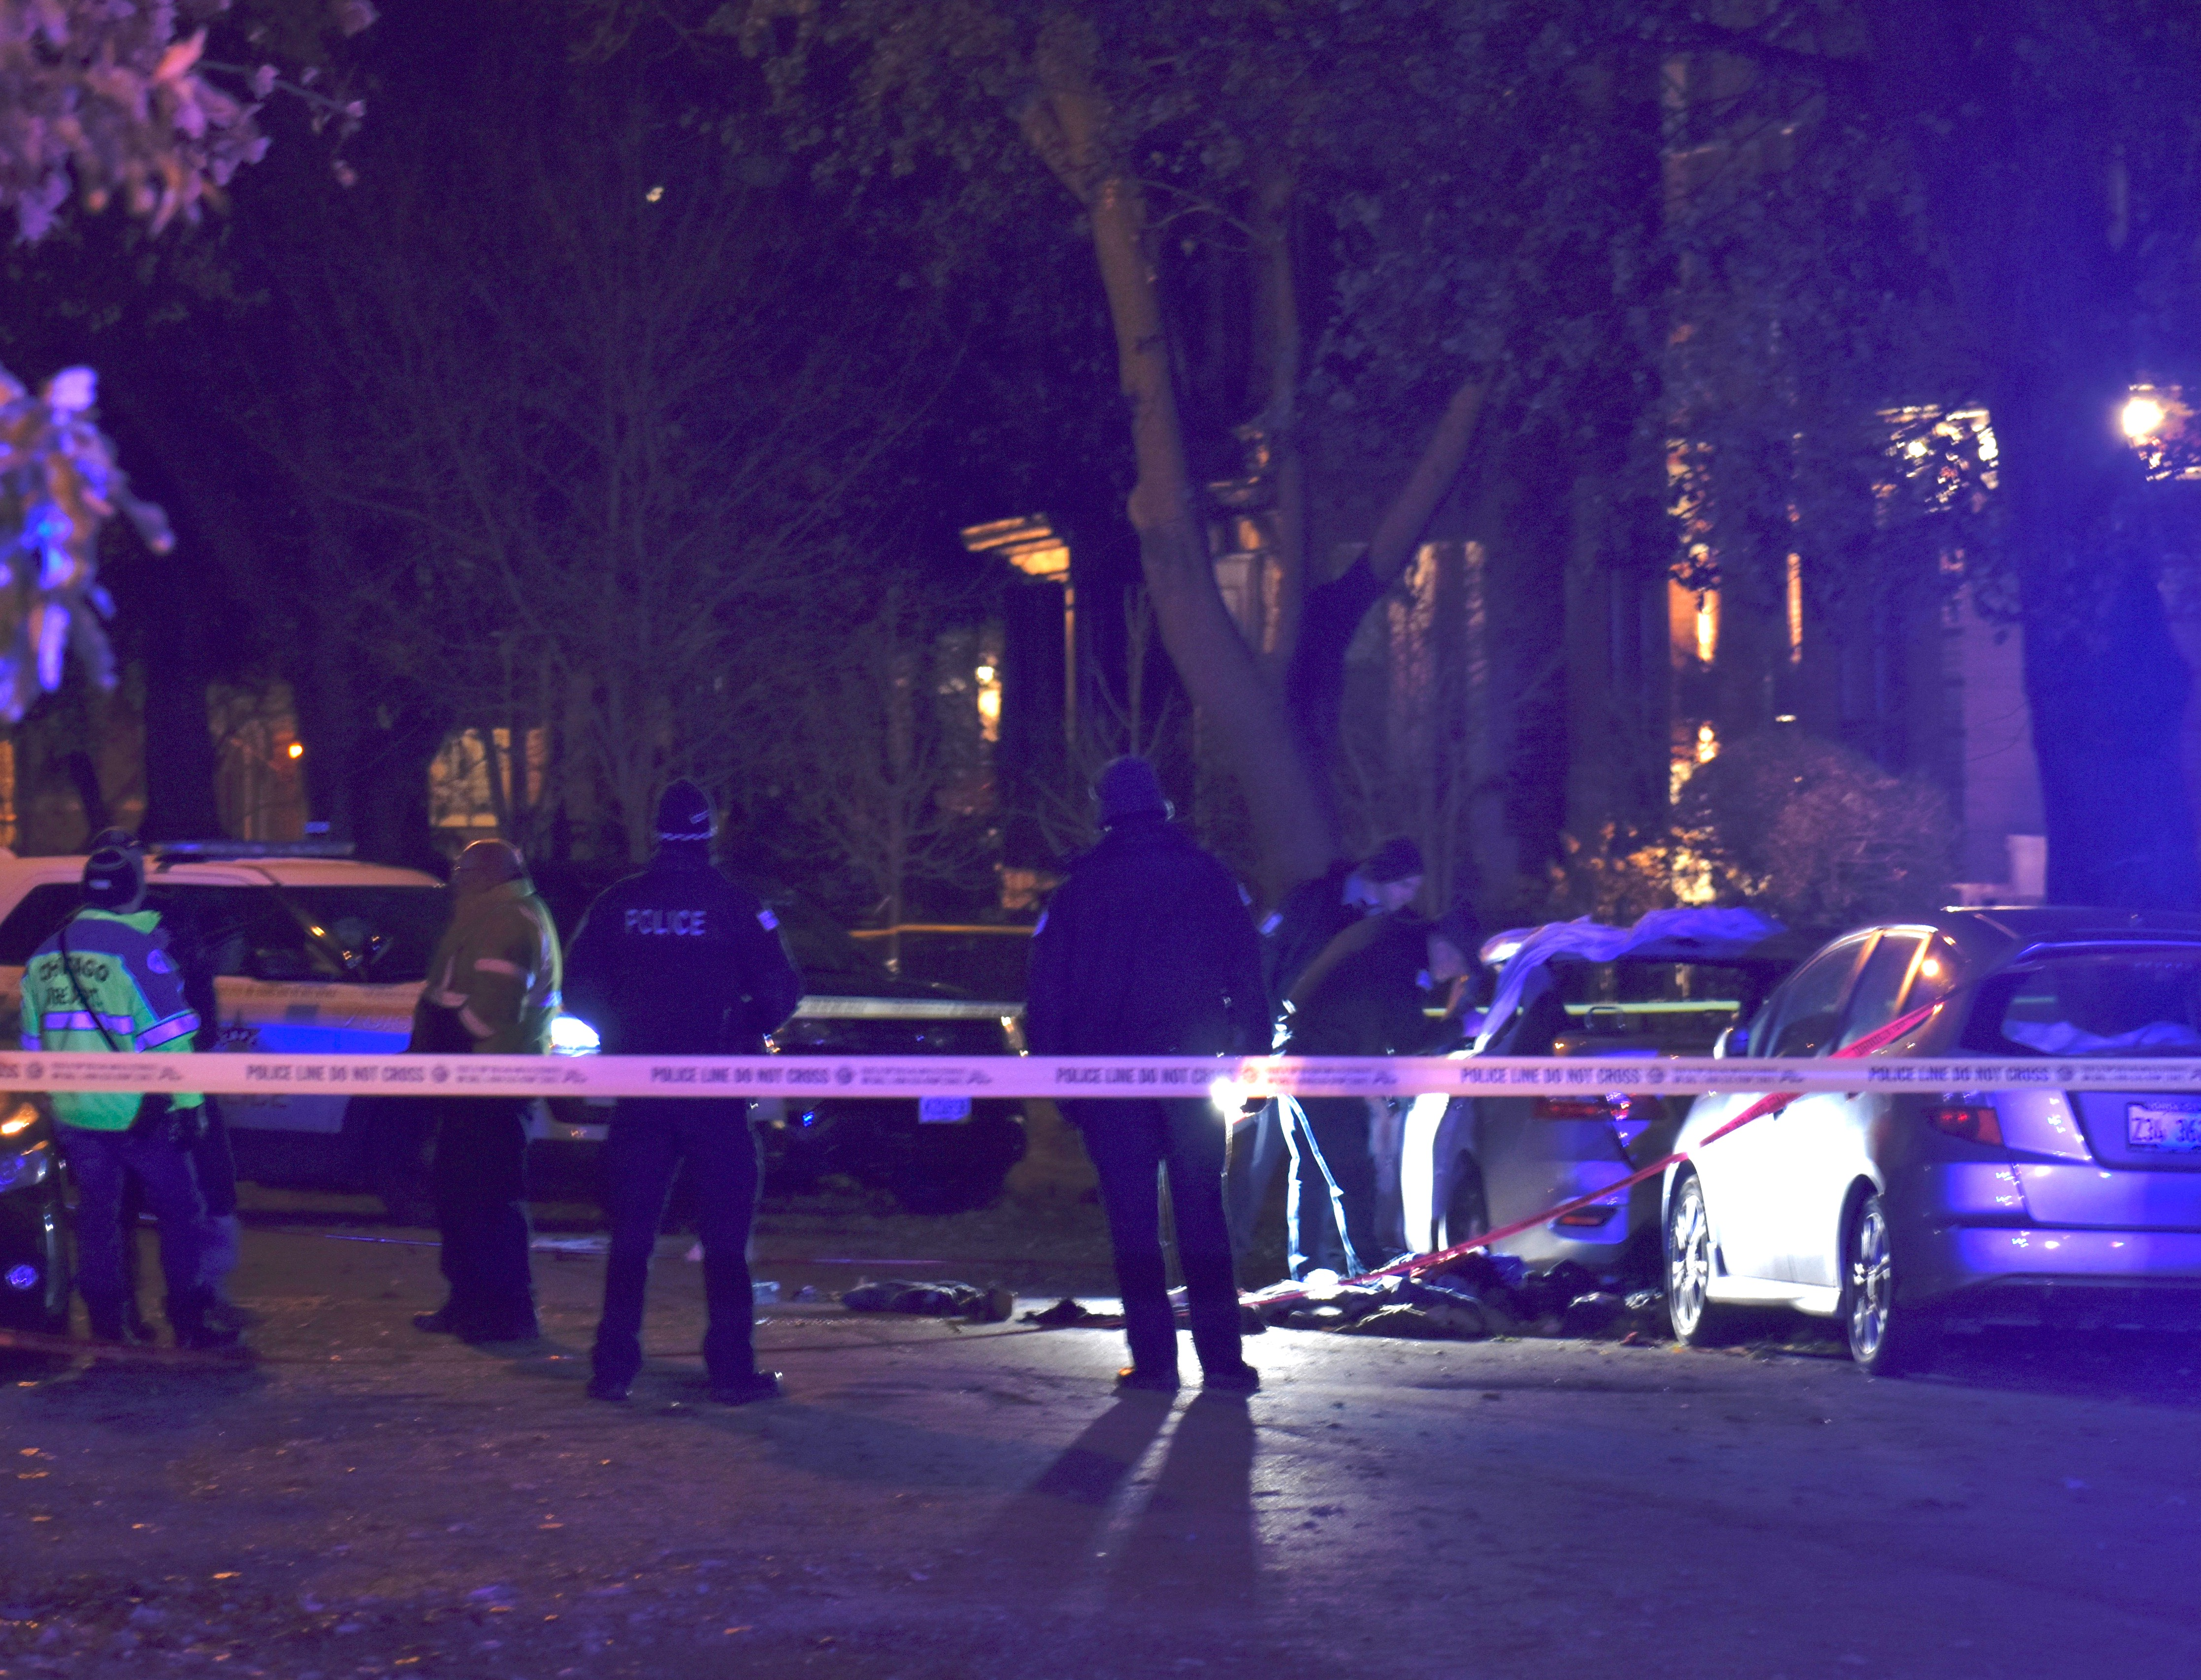 Police investigate after a woman was found dead in a burning car Nov. 22, 2019, in the 1400 block of West Farragut Avenue.